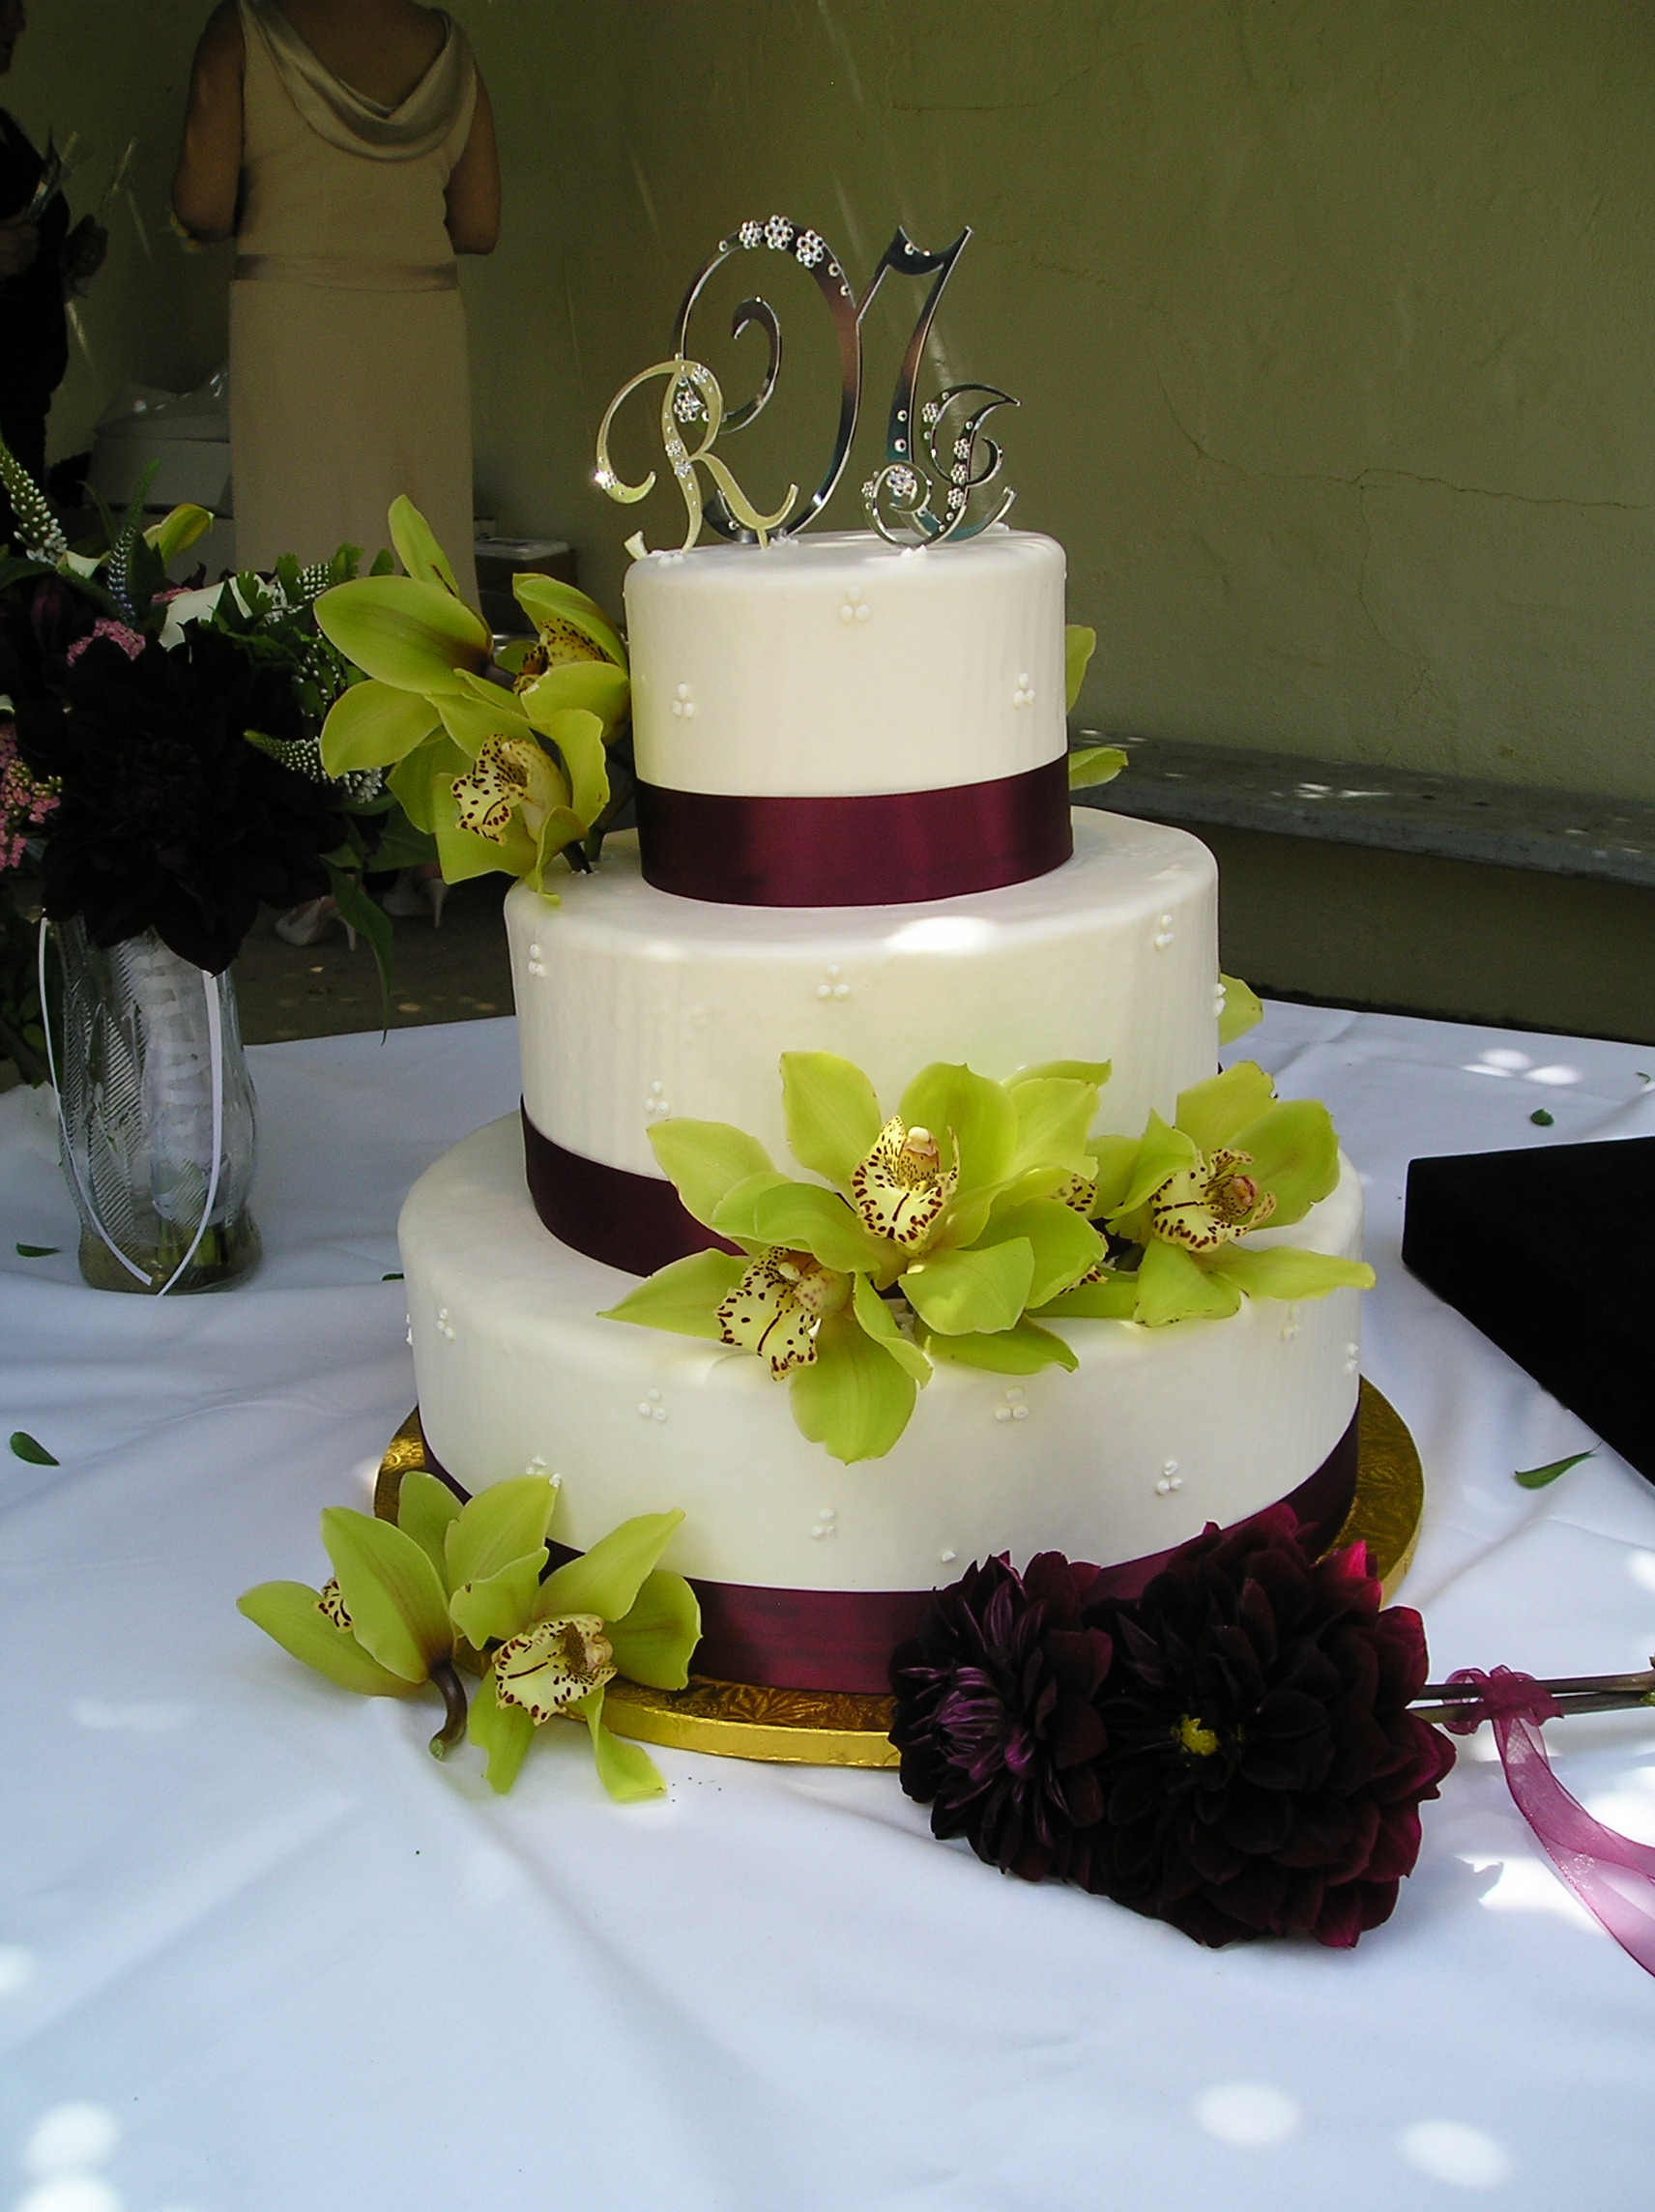 wedding cake flowers decorations file wedding cake with green floral decoration 2006 jpg 22671